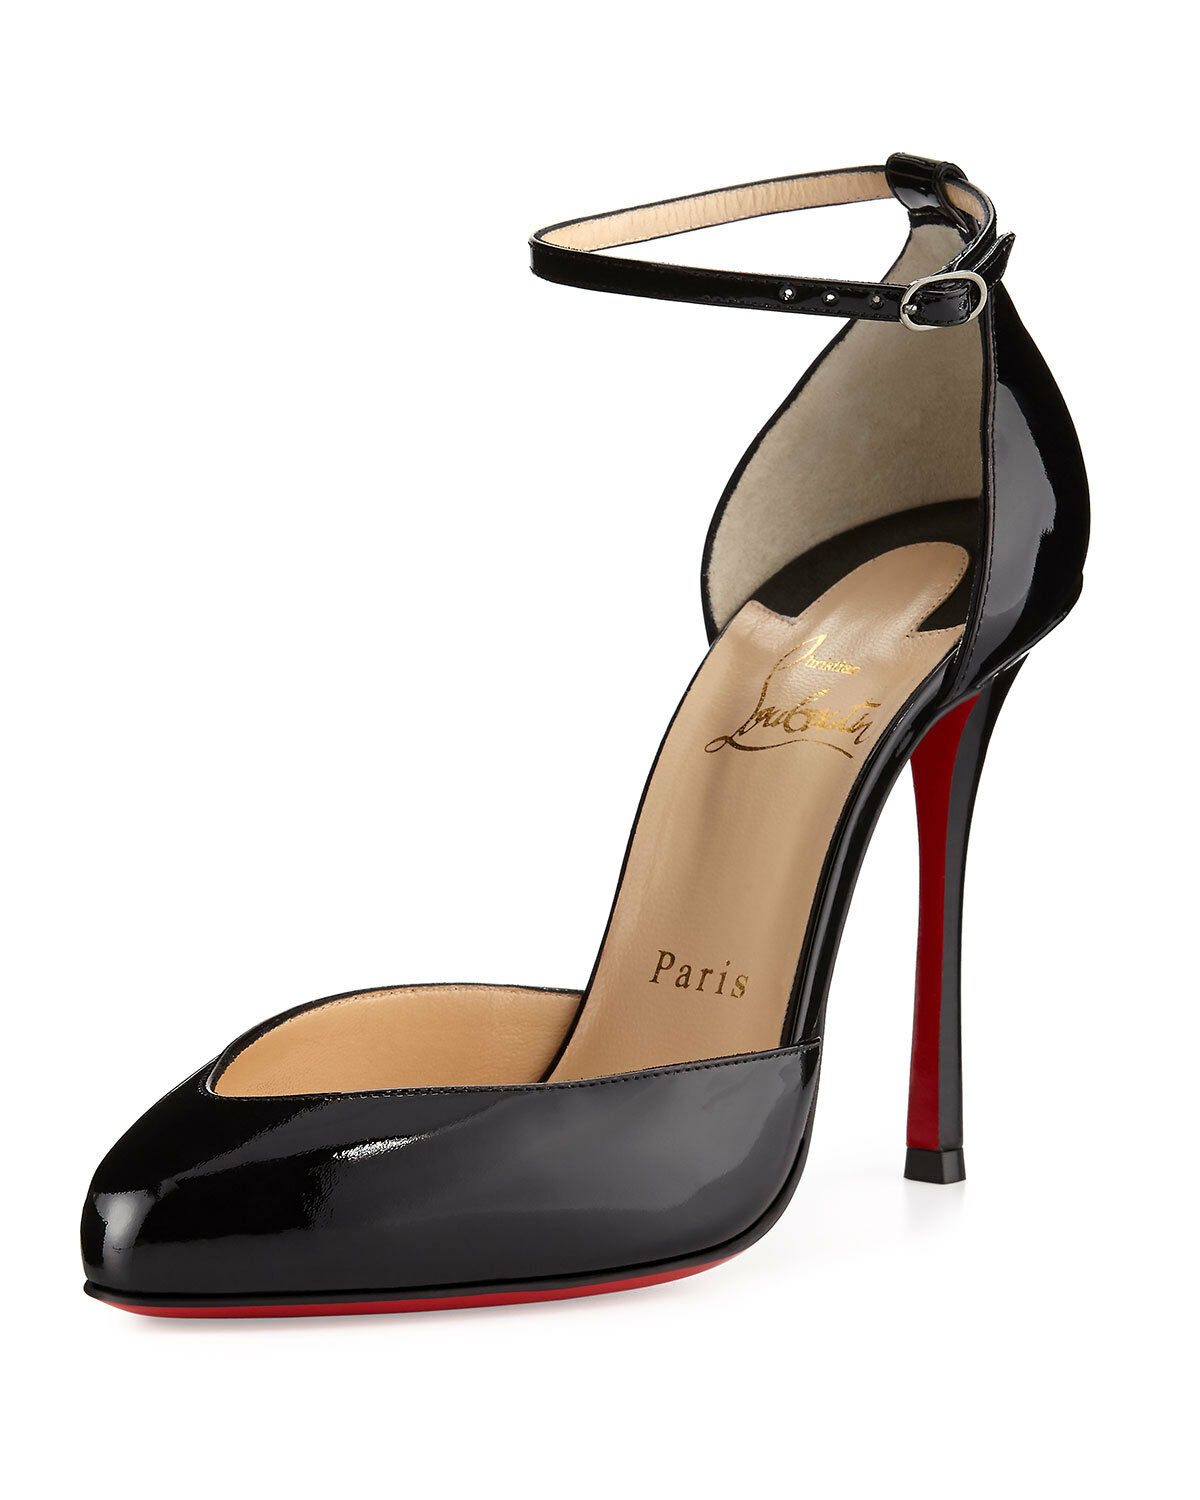 Christian Louboutin Dollyla Patent 100mm Red Sole Pump, Black 38